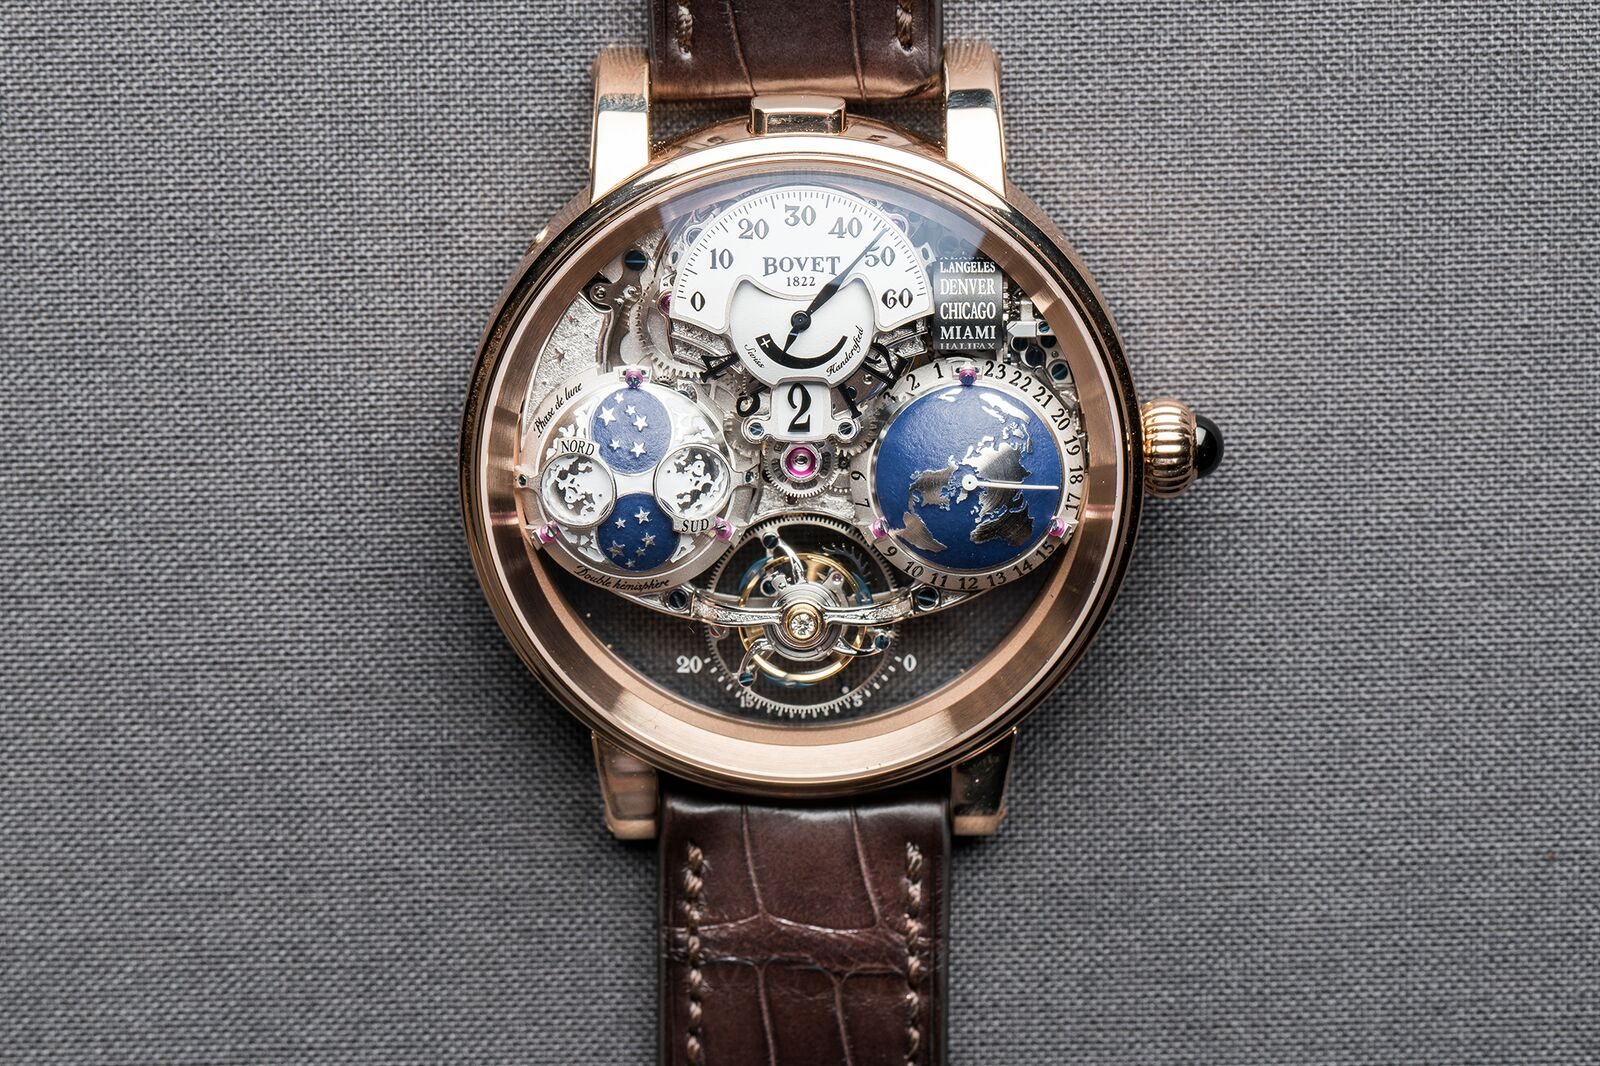 Bovet Récital 18 Shooting Star